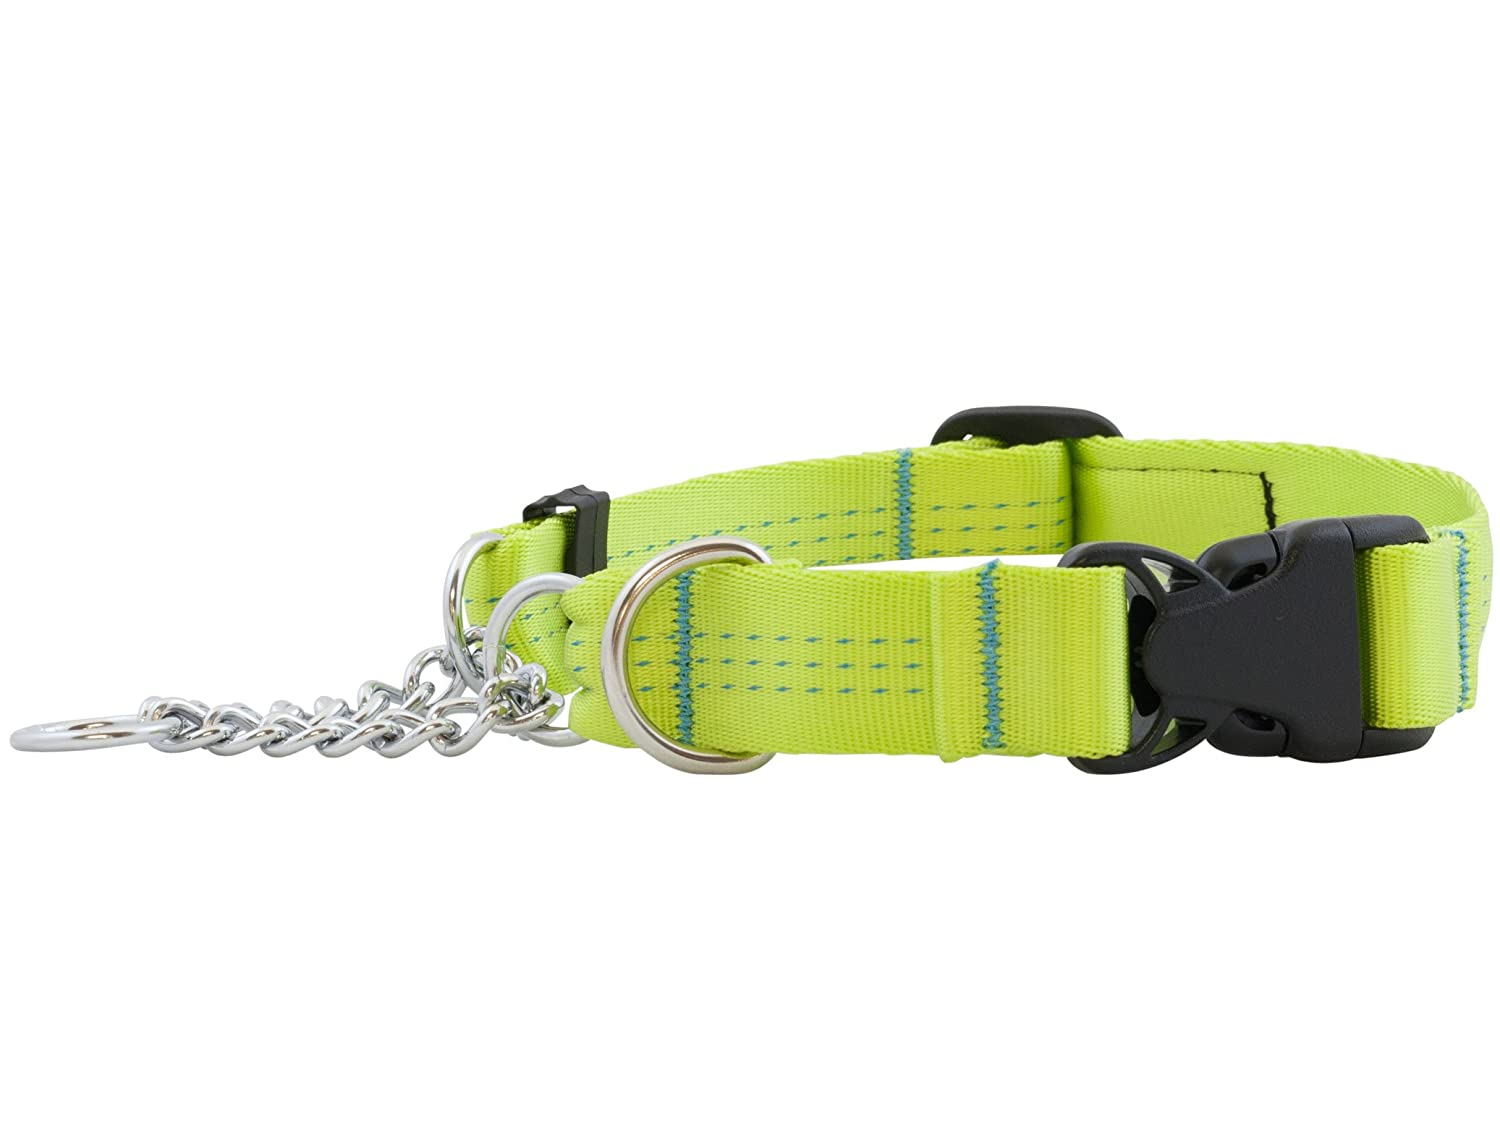 Canine Equipment Technika 1-Inch Quick Release Martingale Dog Collar, X-Large, Lime